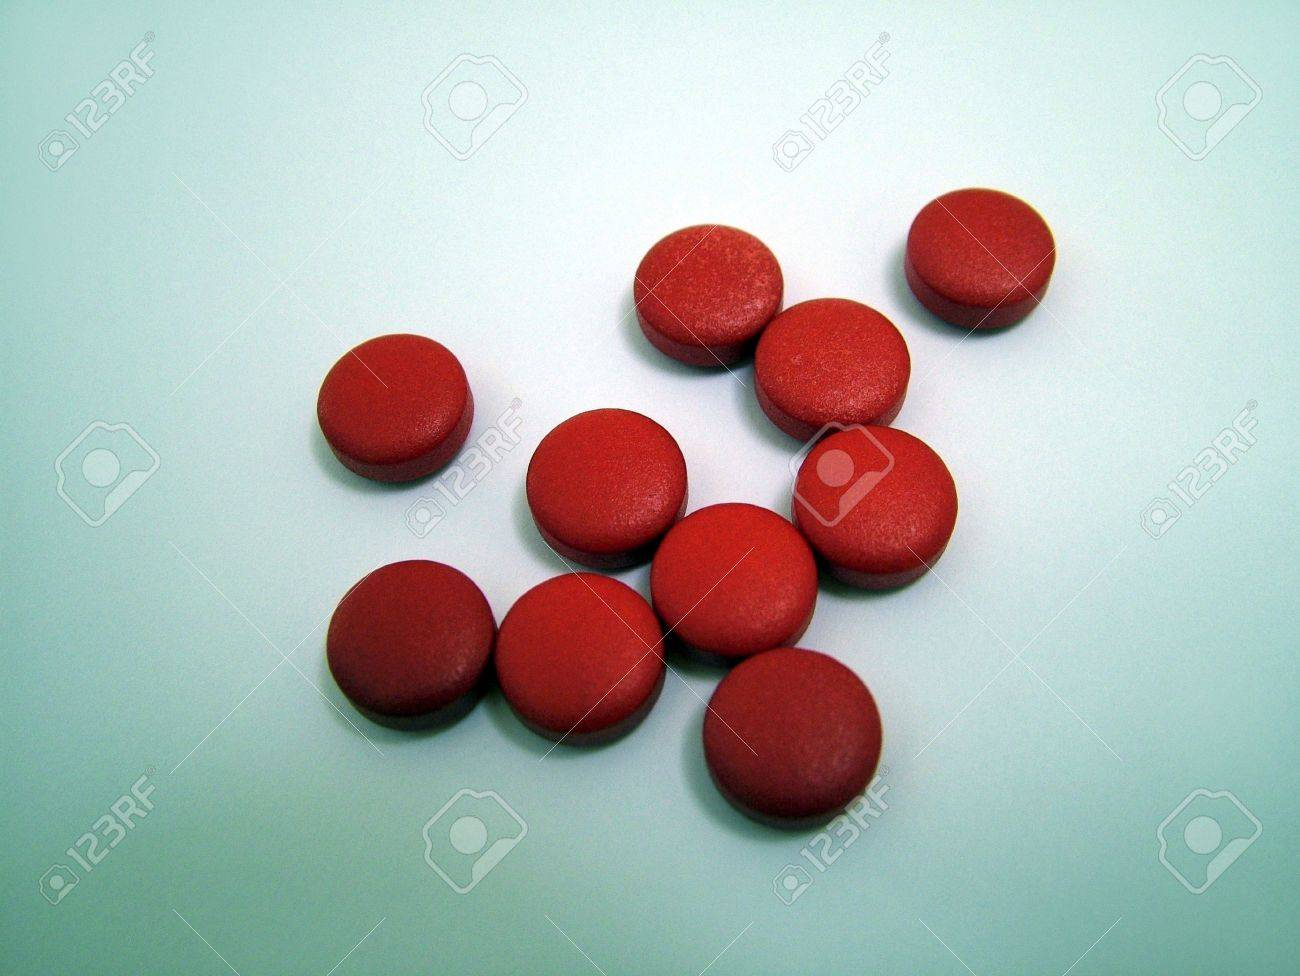 Medical tablets Stock Photo - 3192715